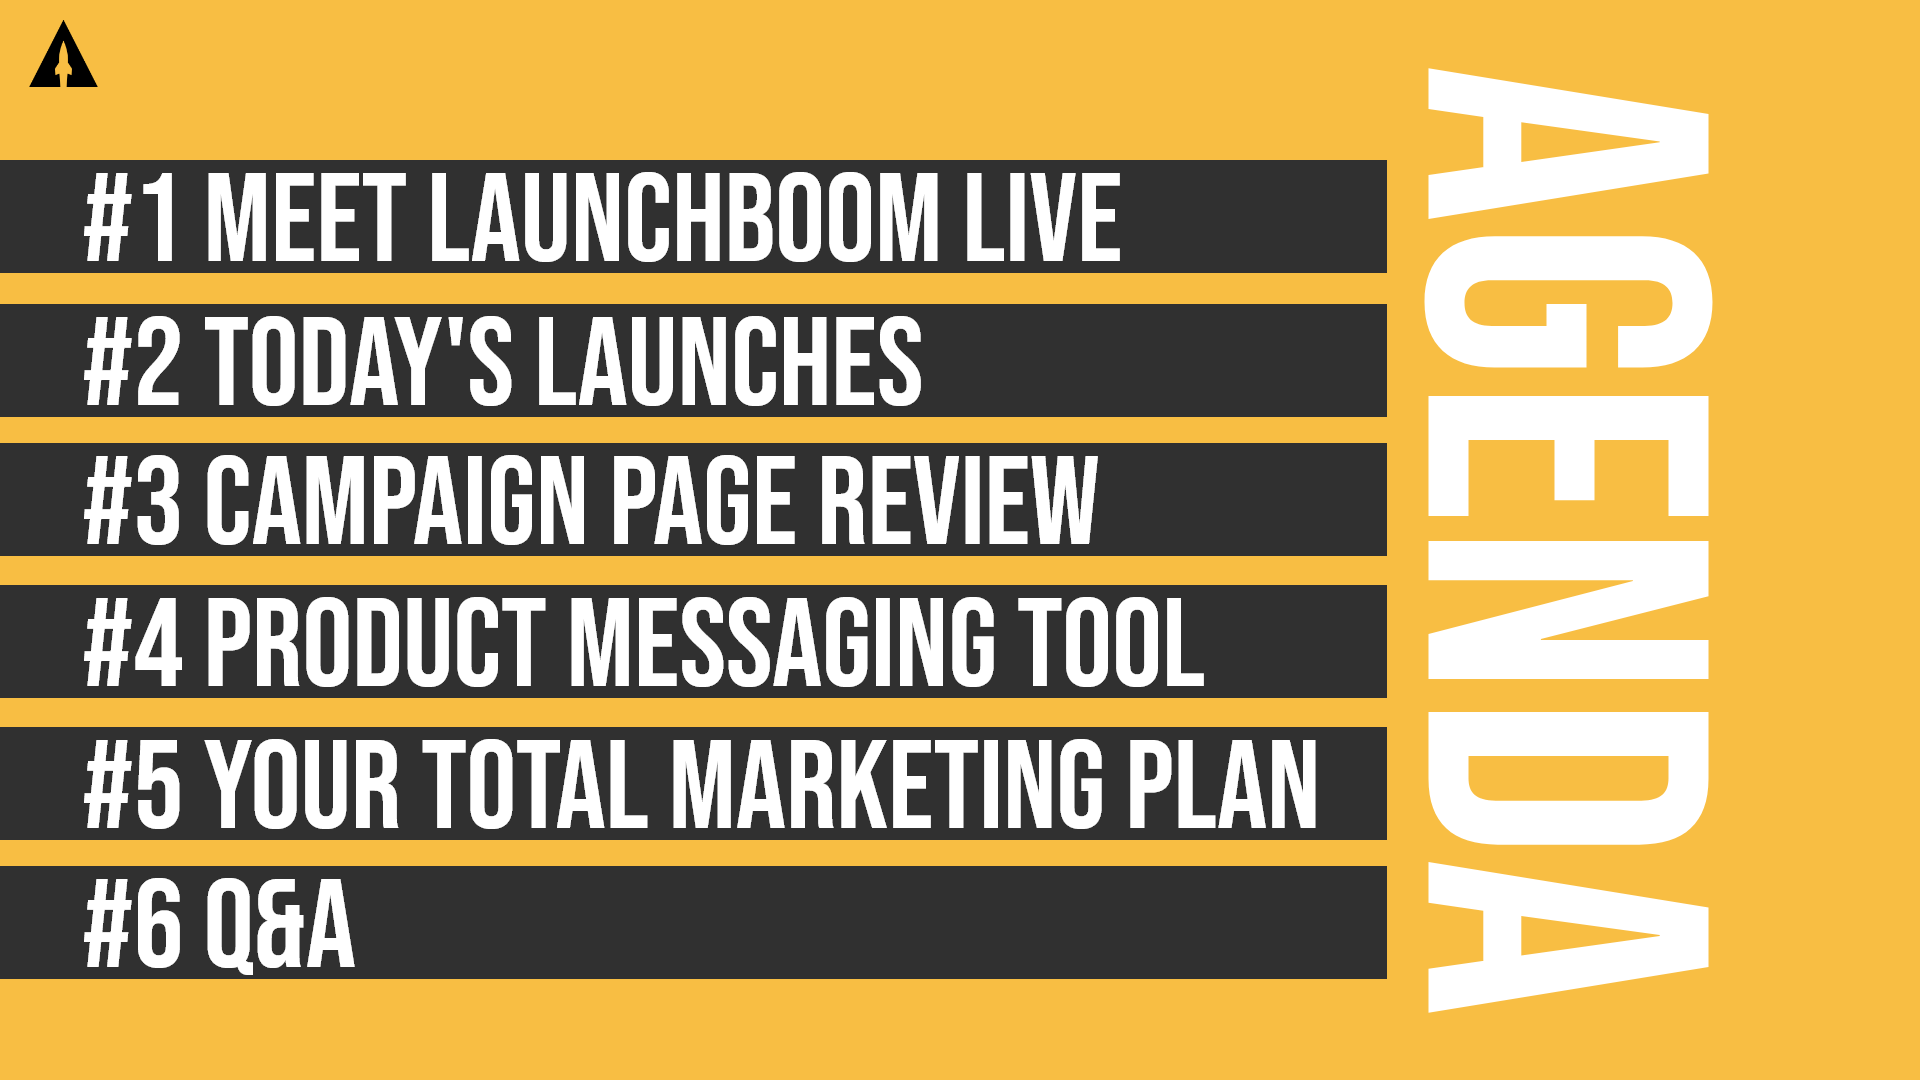 LaunchBoom Live Recap: Campaign page pointers, product messaging, and email lists